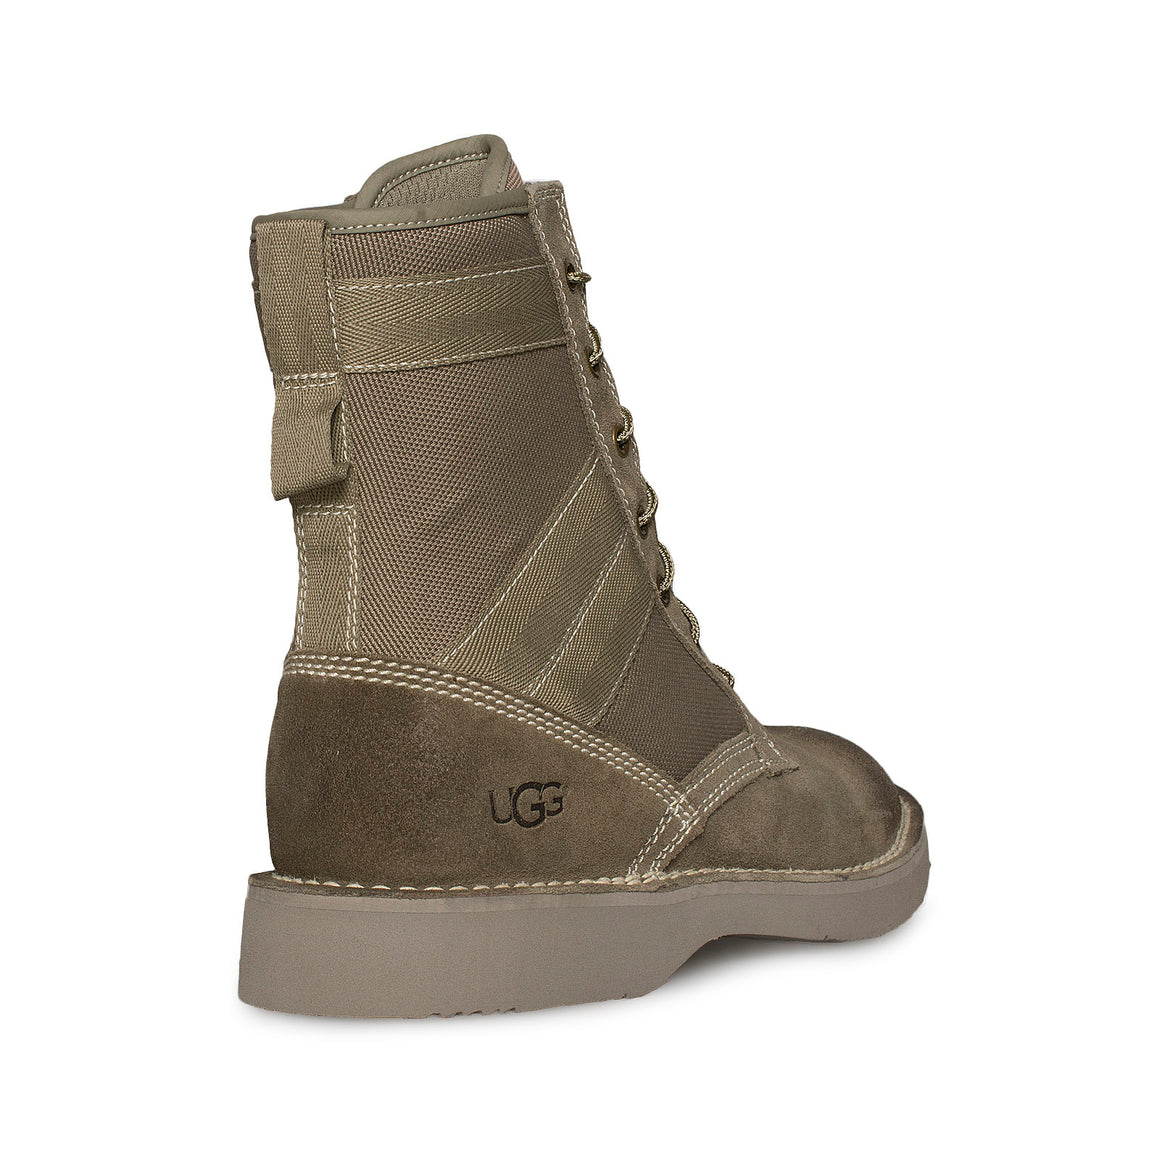 UGG Camino Field Taupe Boots - Men's